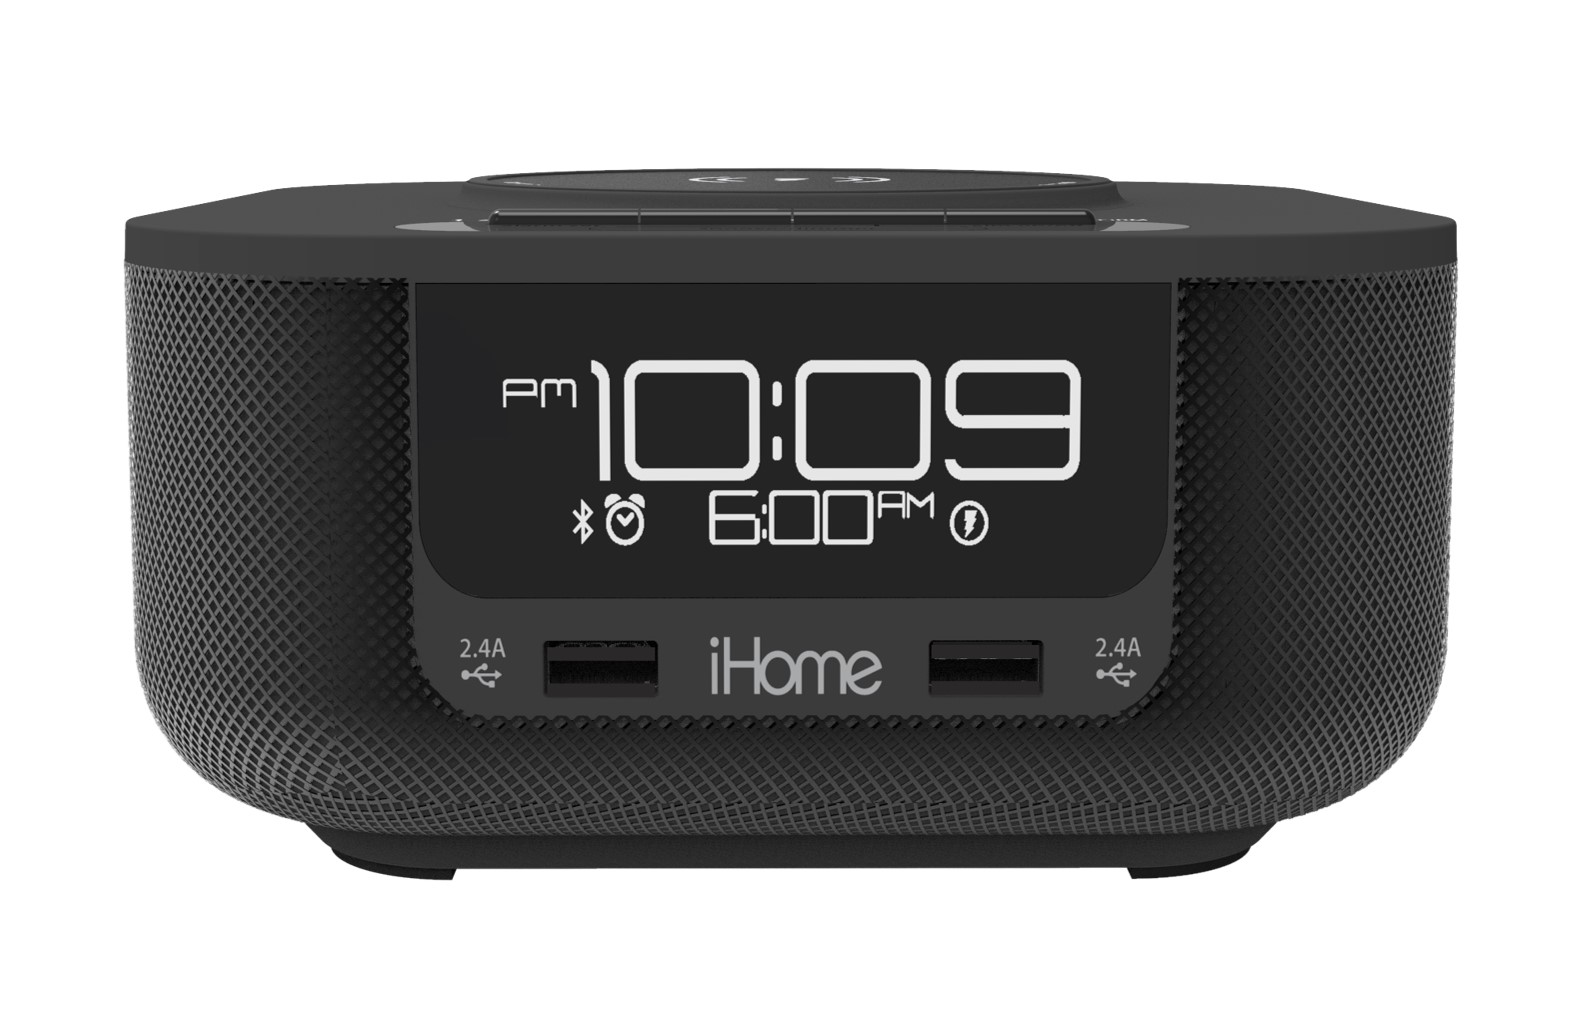 2d2c9a06fd7 Hotel Technologies to Showcase Qi Wireless Charging Clock with Bluetooth at   HX